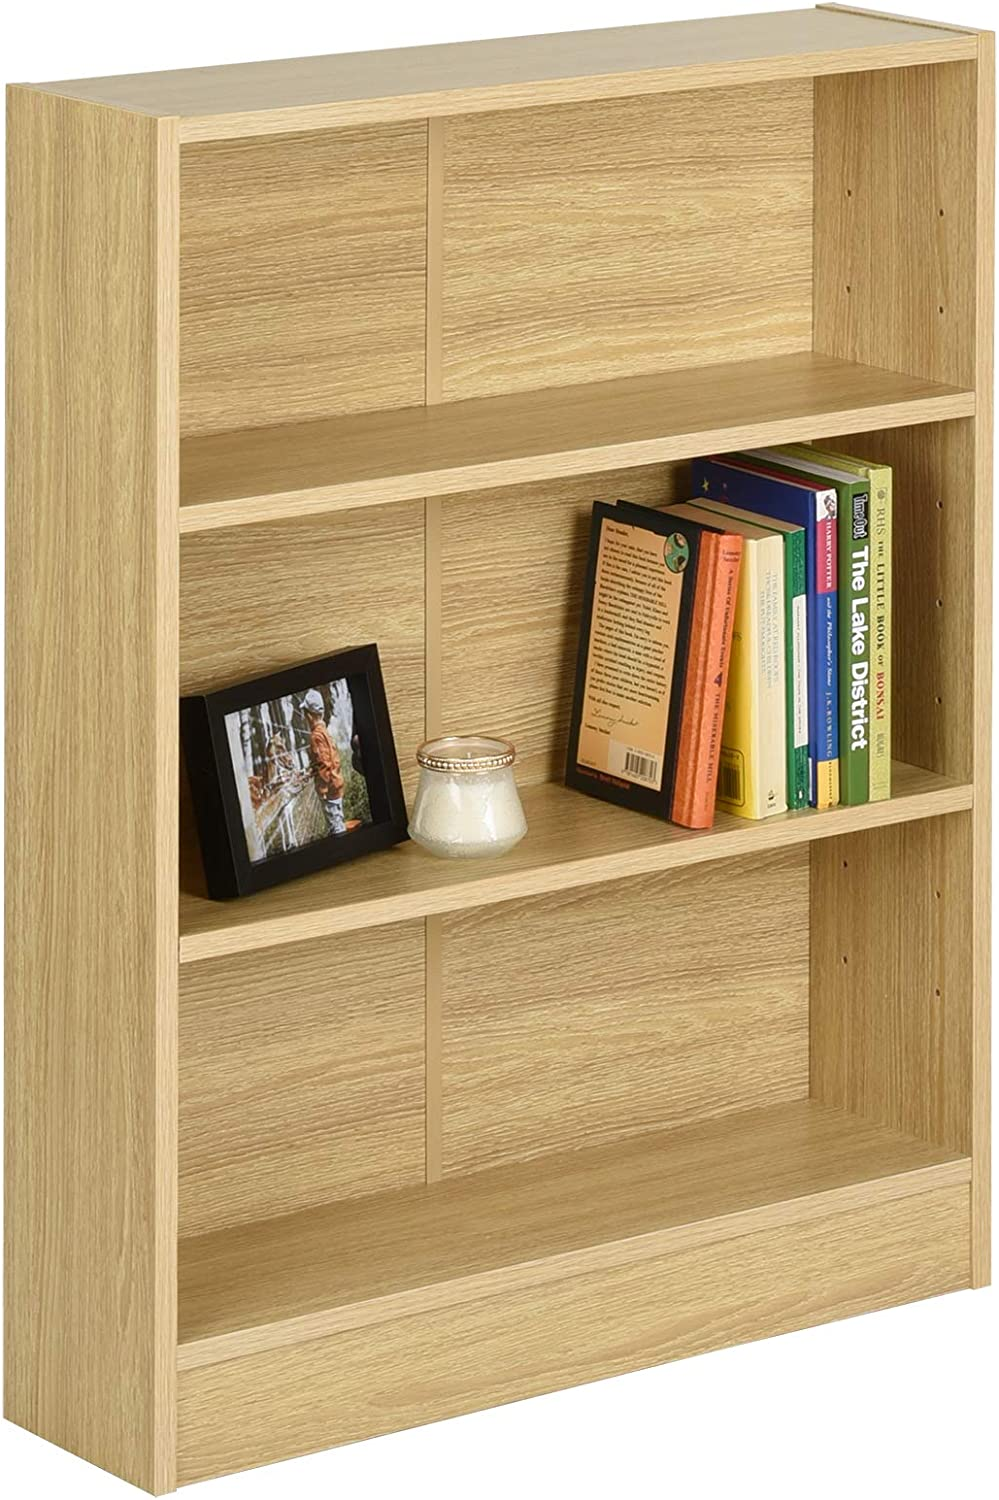 Hartleys Oak 3 Tier Bookcase